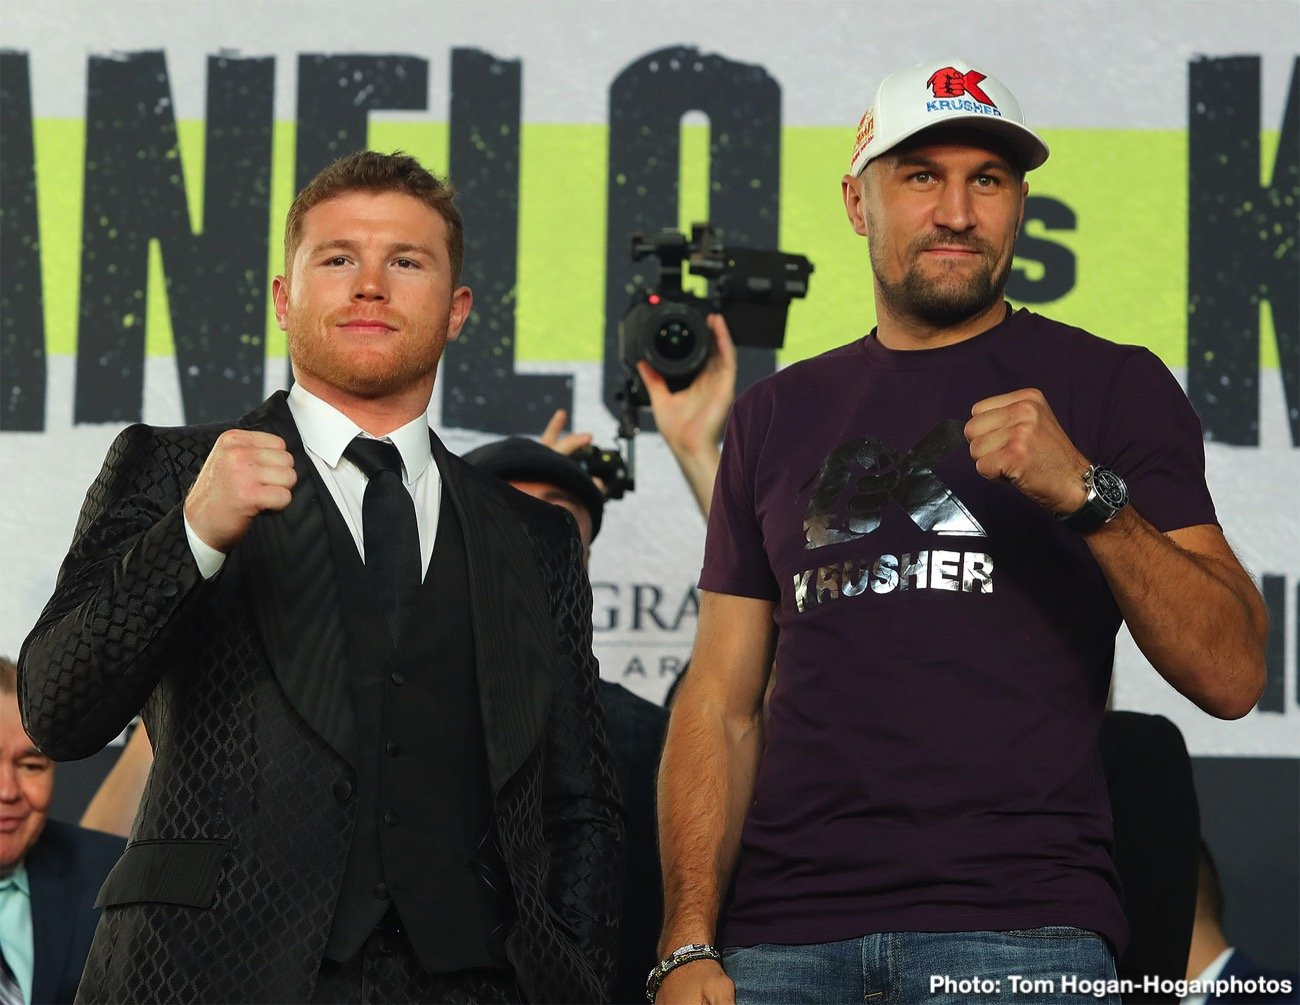 "Sergey Kovalev - On Saturday, November 2, Canelo Alvarez (51-1-2, 34 KOs) will take on a new challenge as he moves into the 175-pound weight class in a 12-round fight against Sergey ""Krusher"" Kovalev (34-3-1, 29 KOs) for Kovalev's WBO Light Heavyweight World Title.This highly anticipated bout and its co-featured fights will be broadcast live from MGM Grand in Las Vegas to big screens across the nation.A full undercard will be shown prior to the main event."